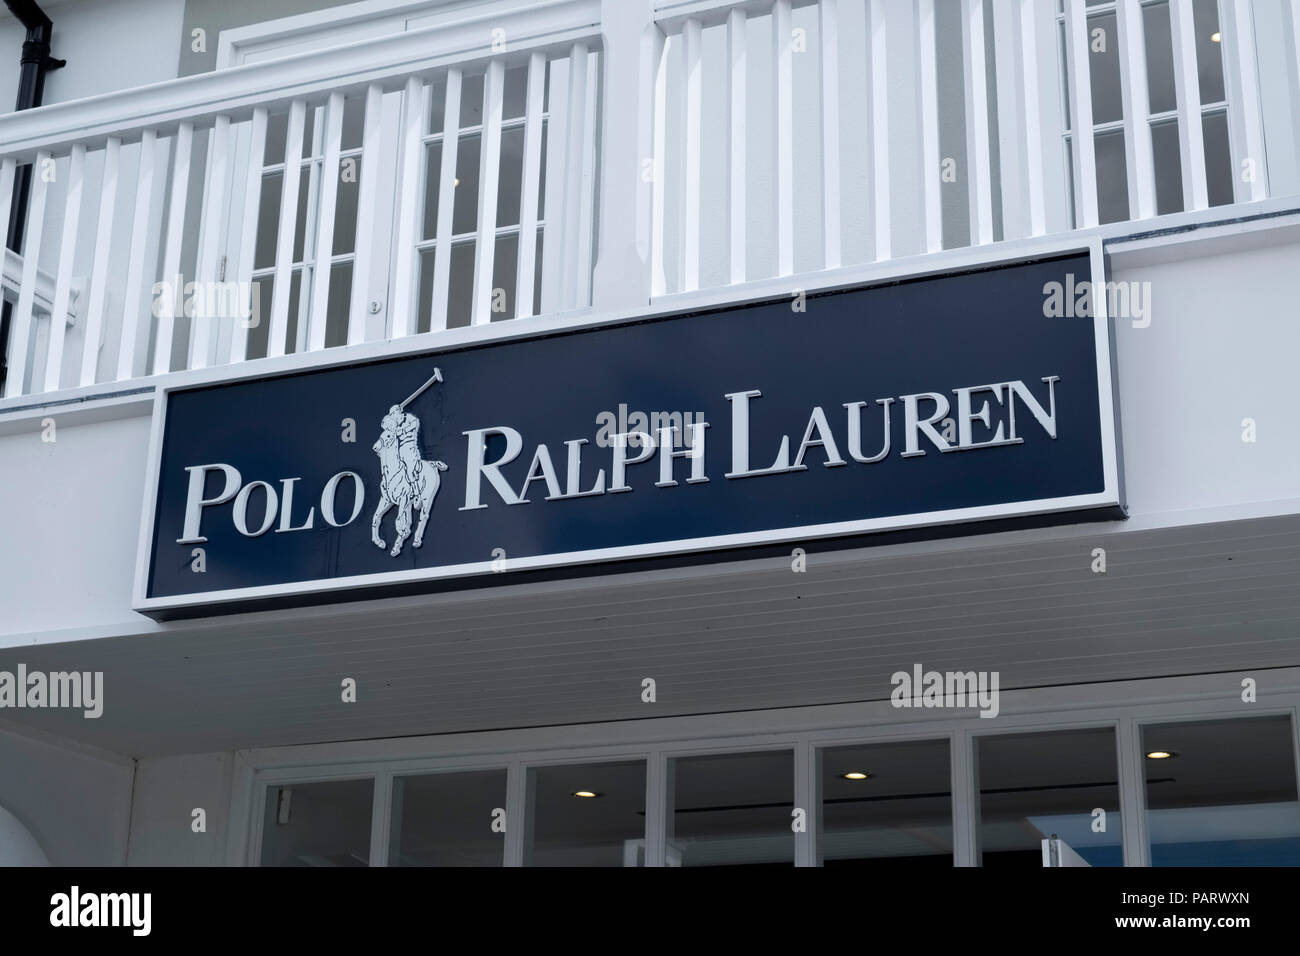 Polo Ralph Lauren store logo sign, UK - Stock Image